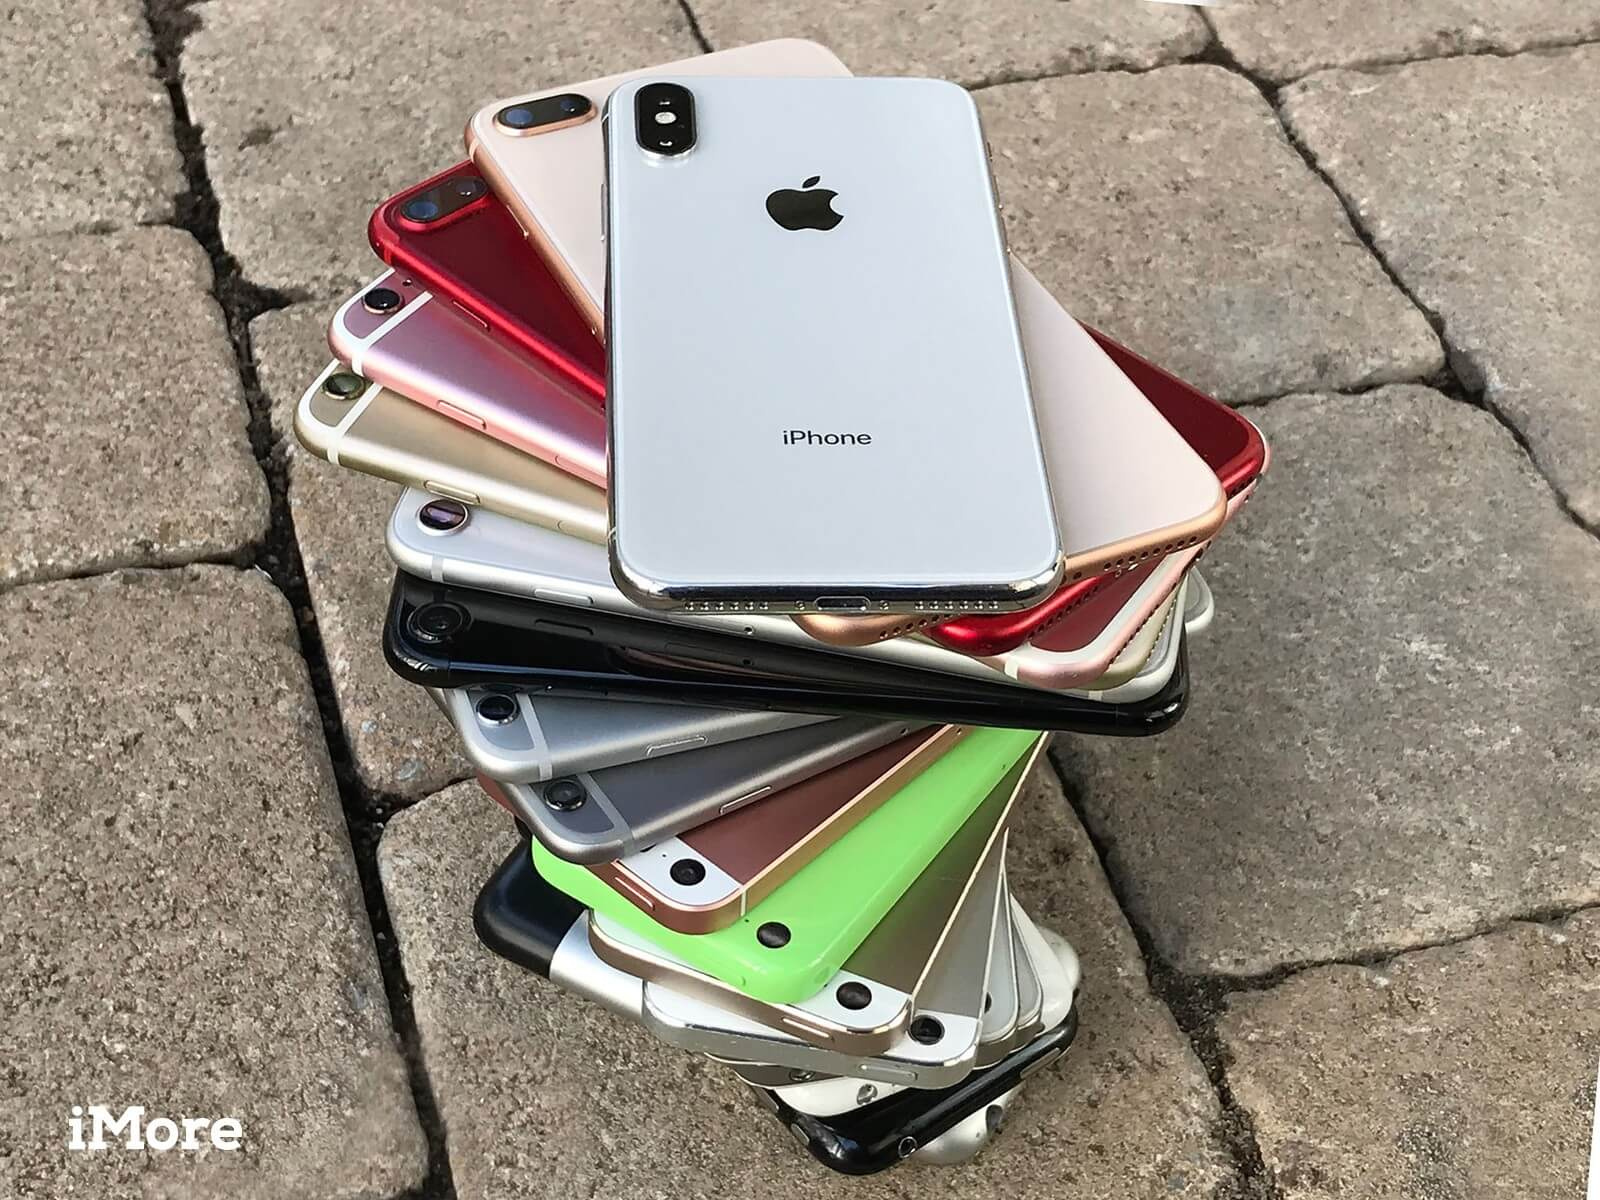 come vedere se iphone originale